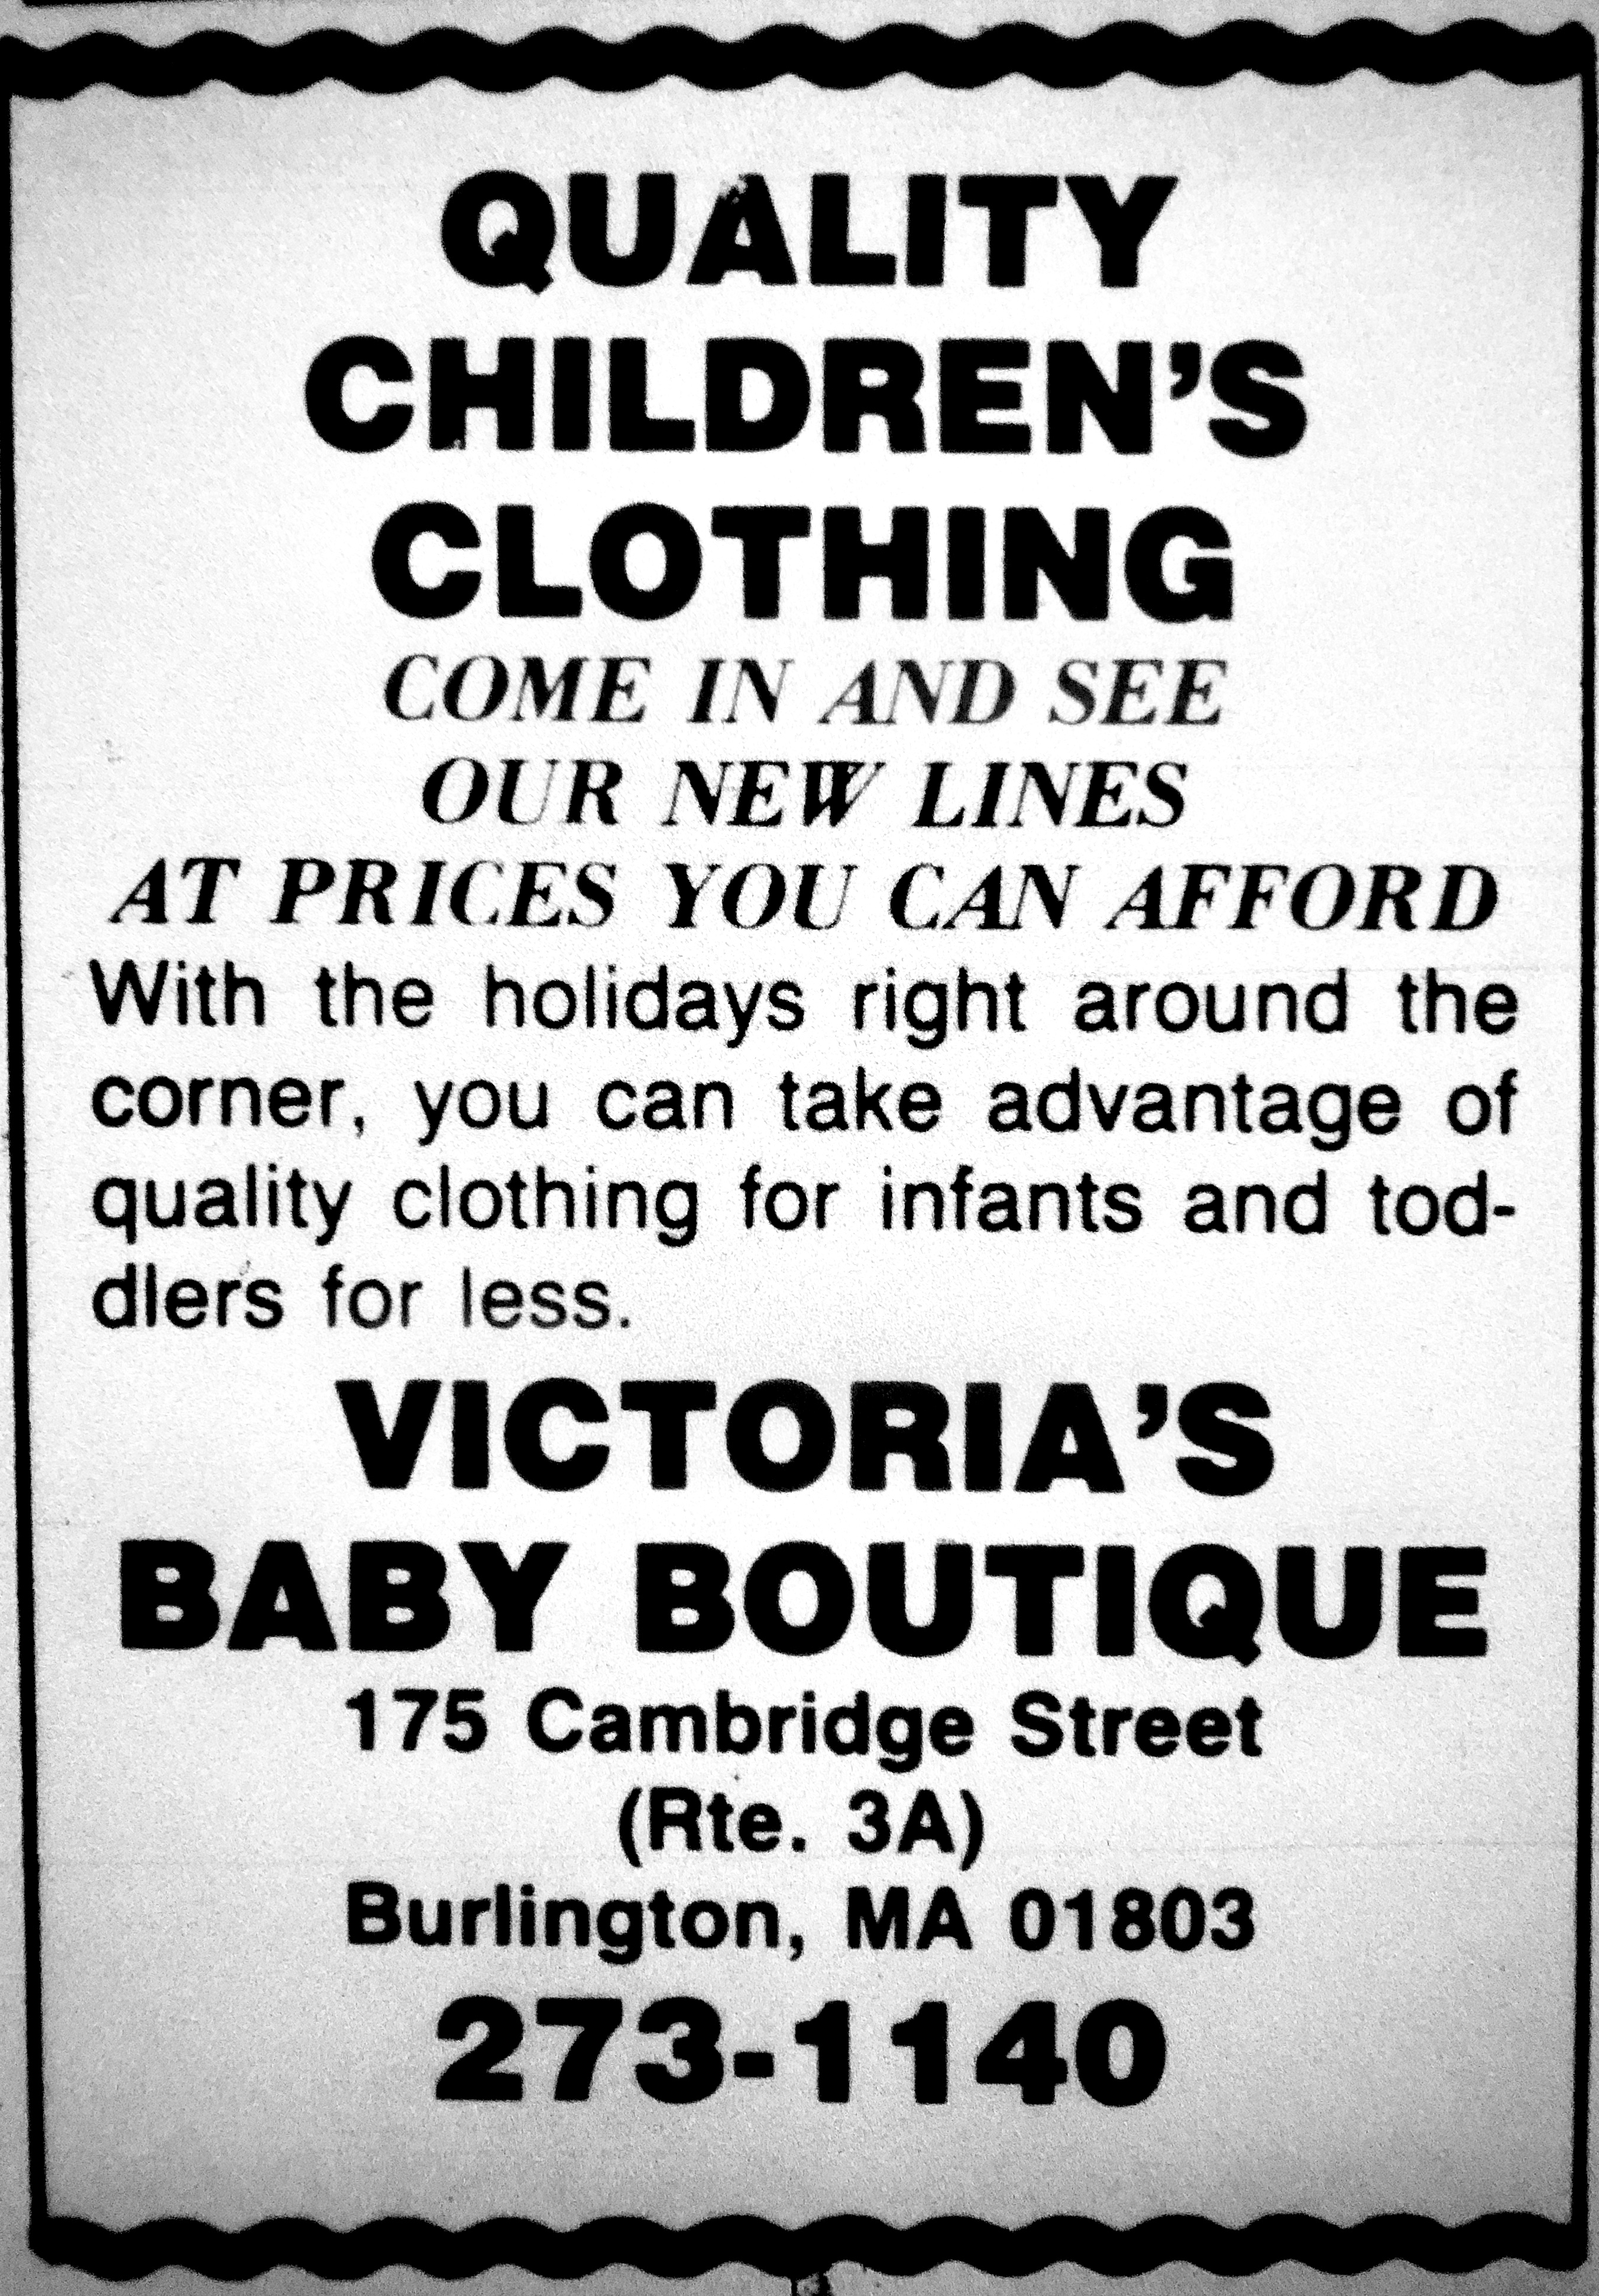 Victoria's Baby Boutique, Burlington MA